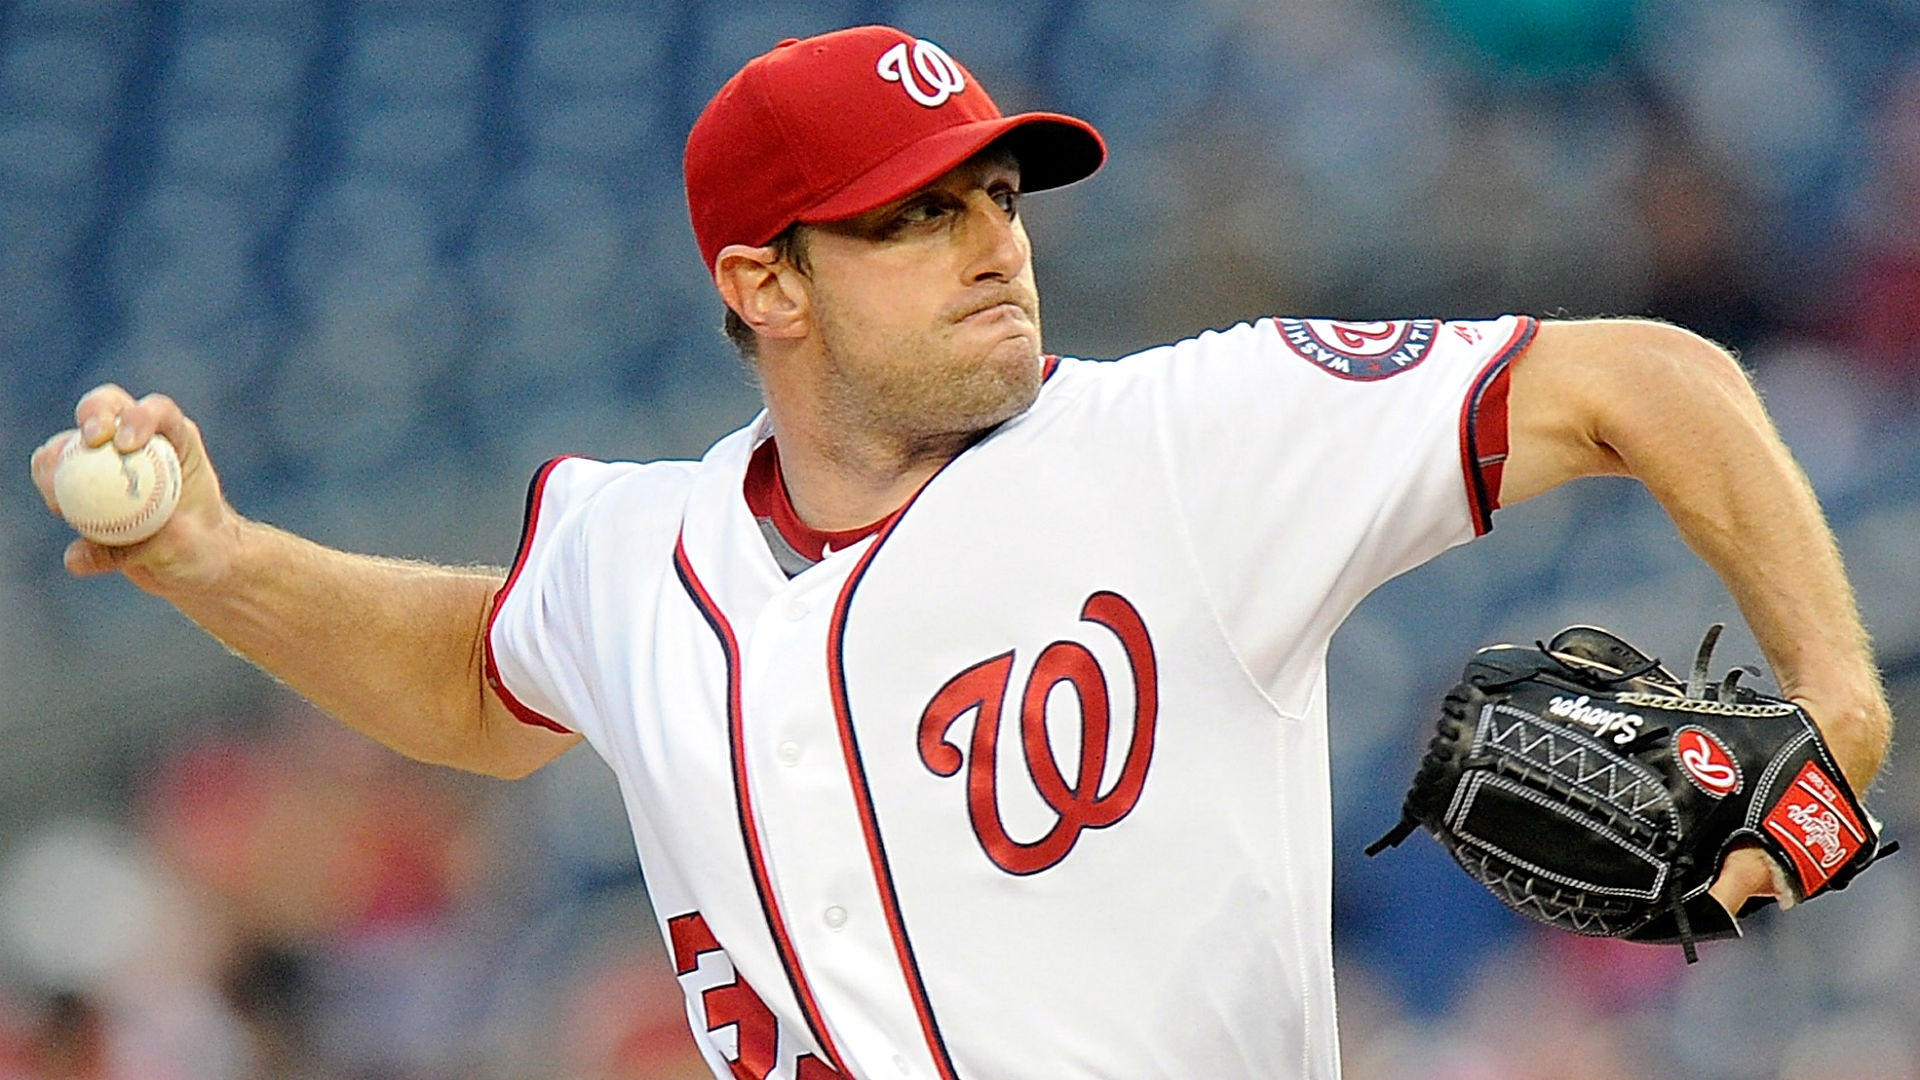 Max Scherzer ties major league record with 20 strikeouts ...